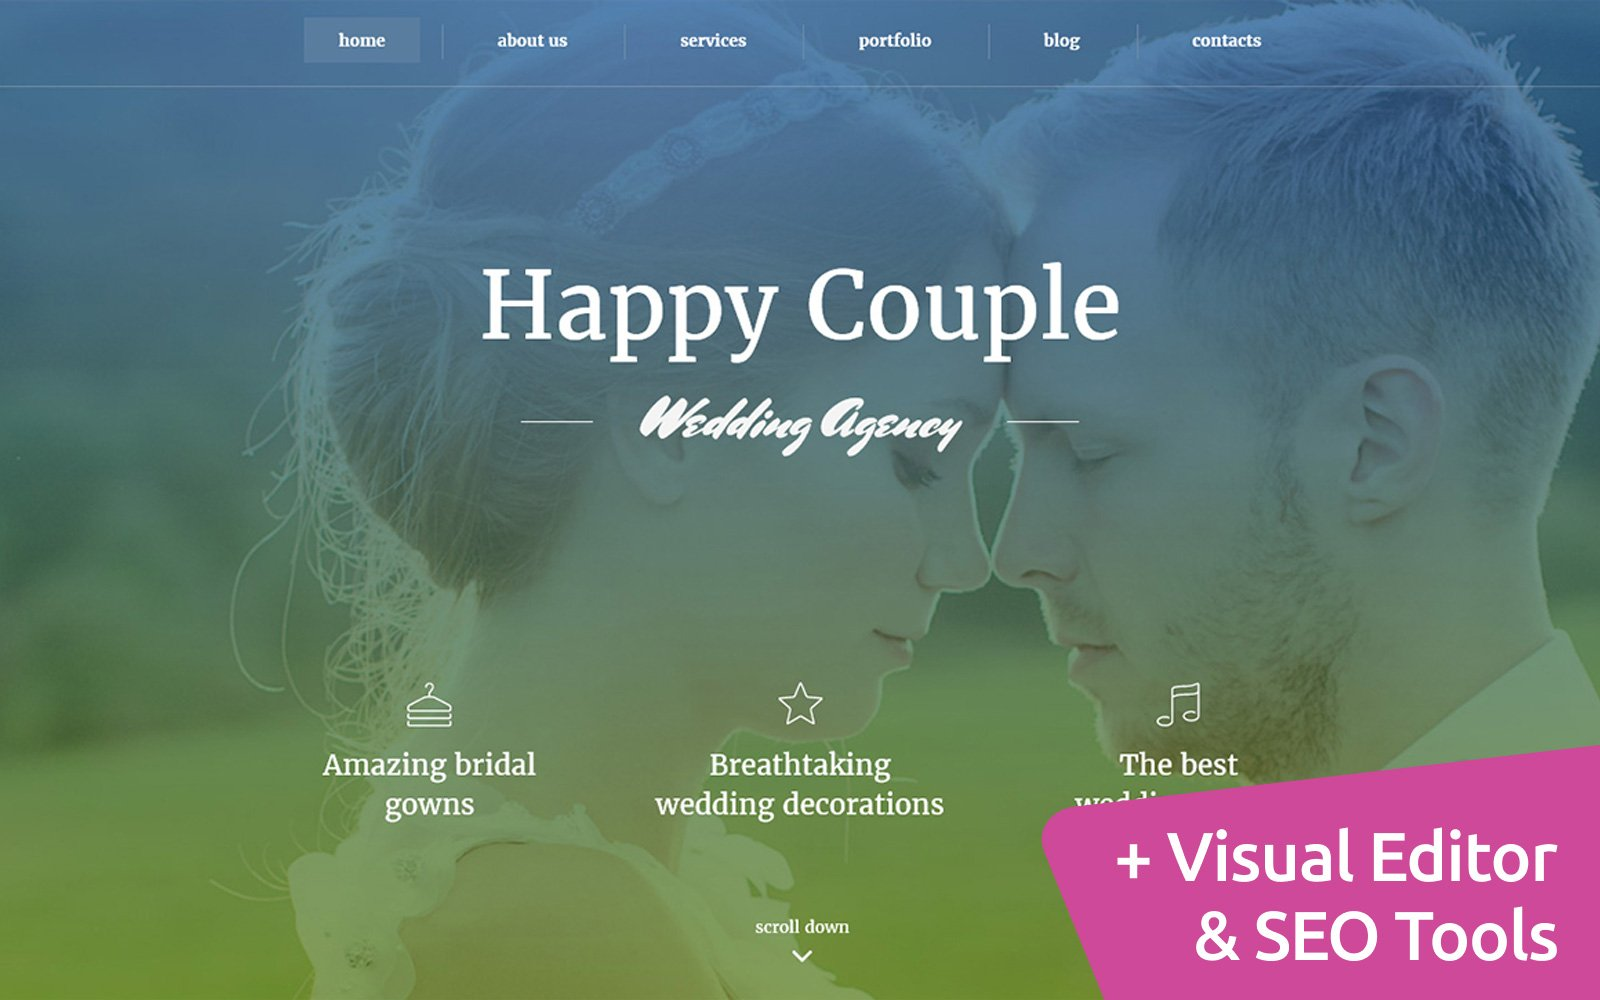 Responsywny szablon Moto CMS 3 Happy Couple - Wedding Planner #59221